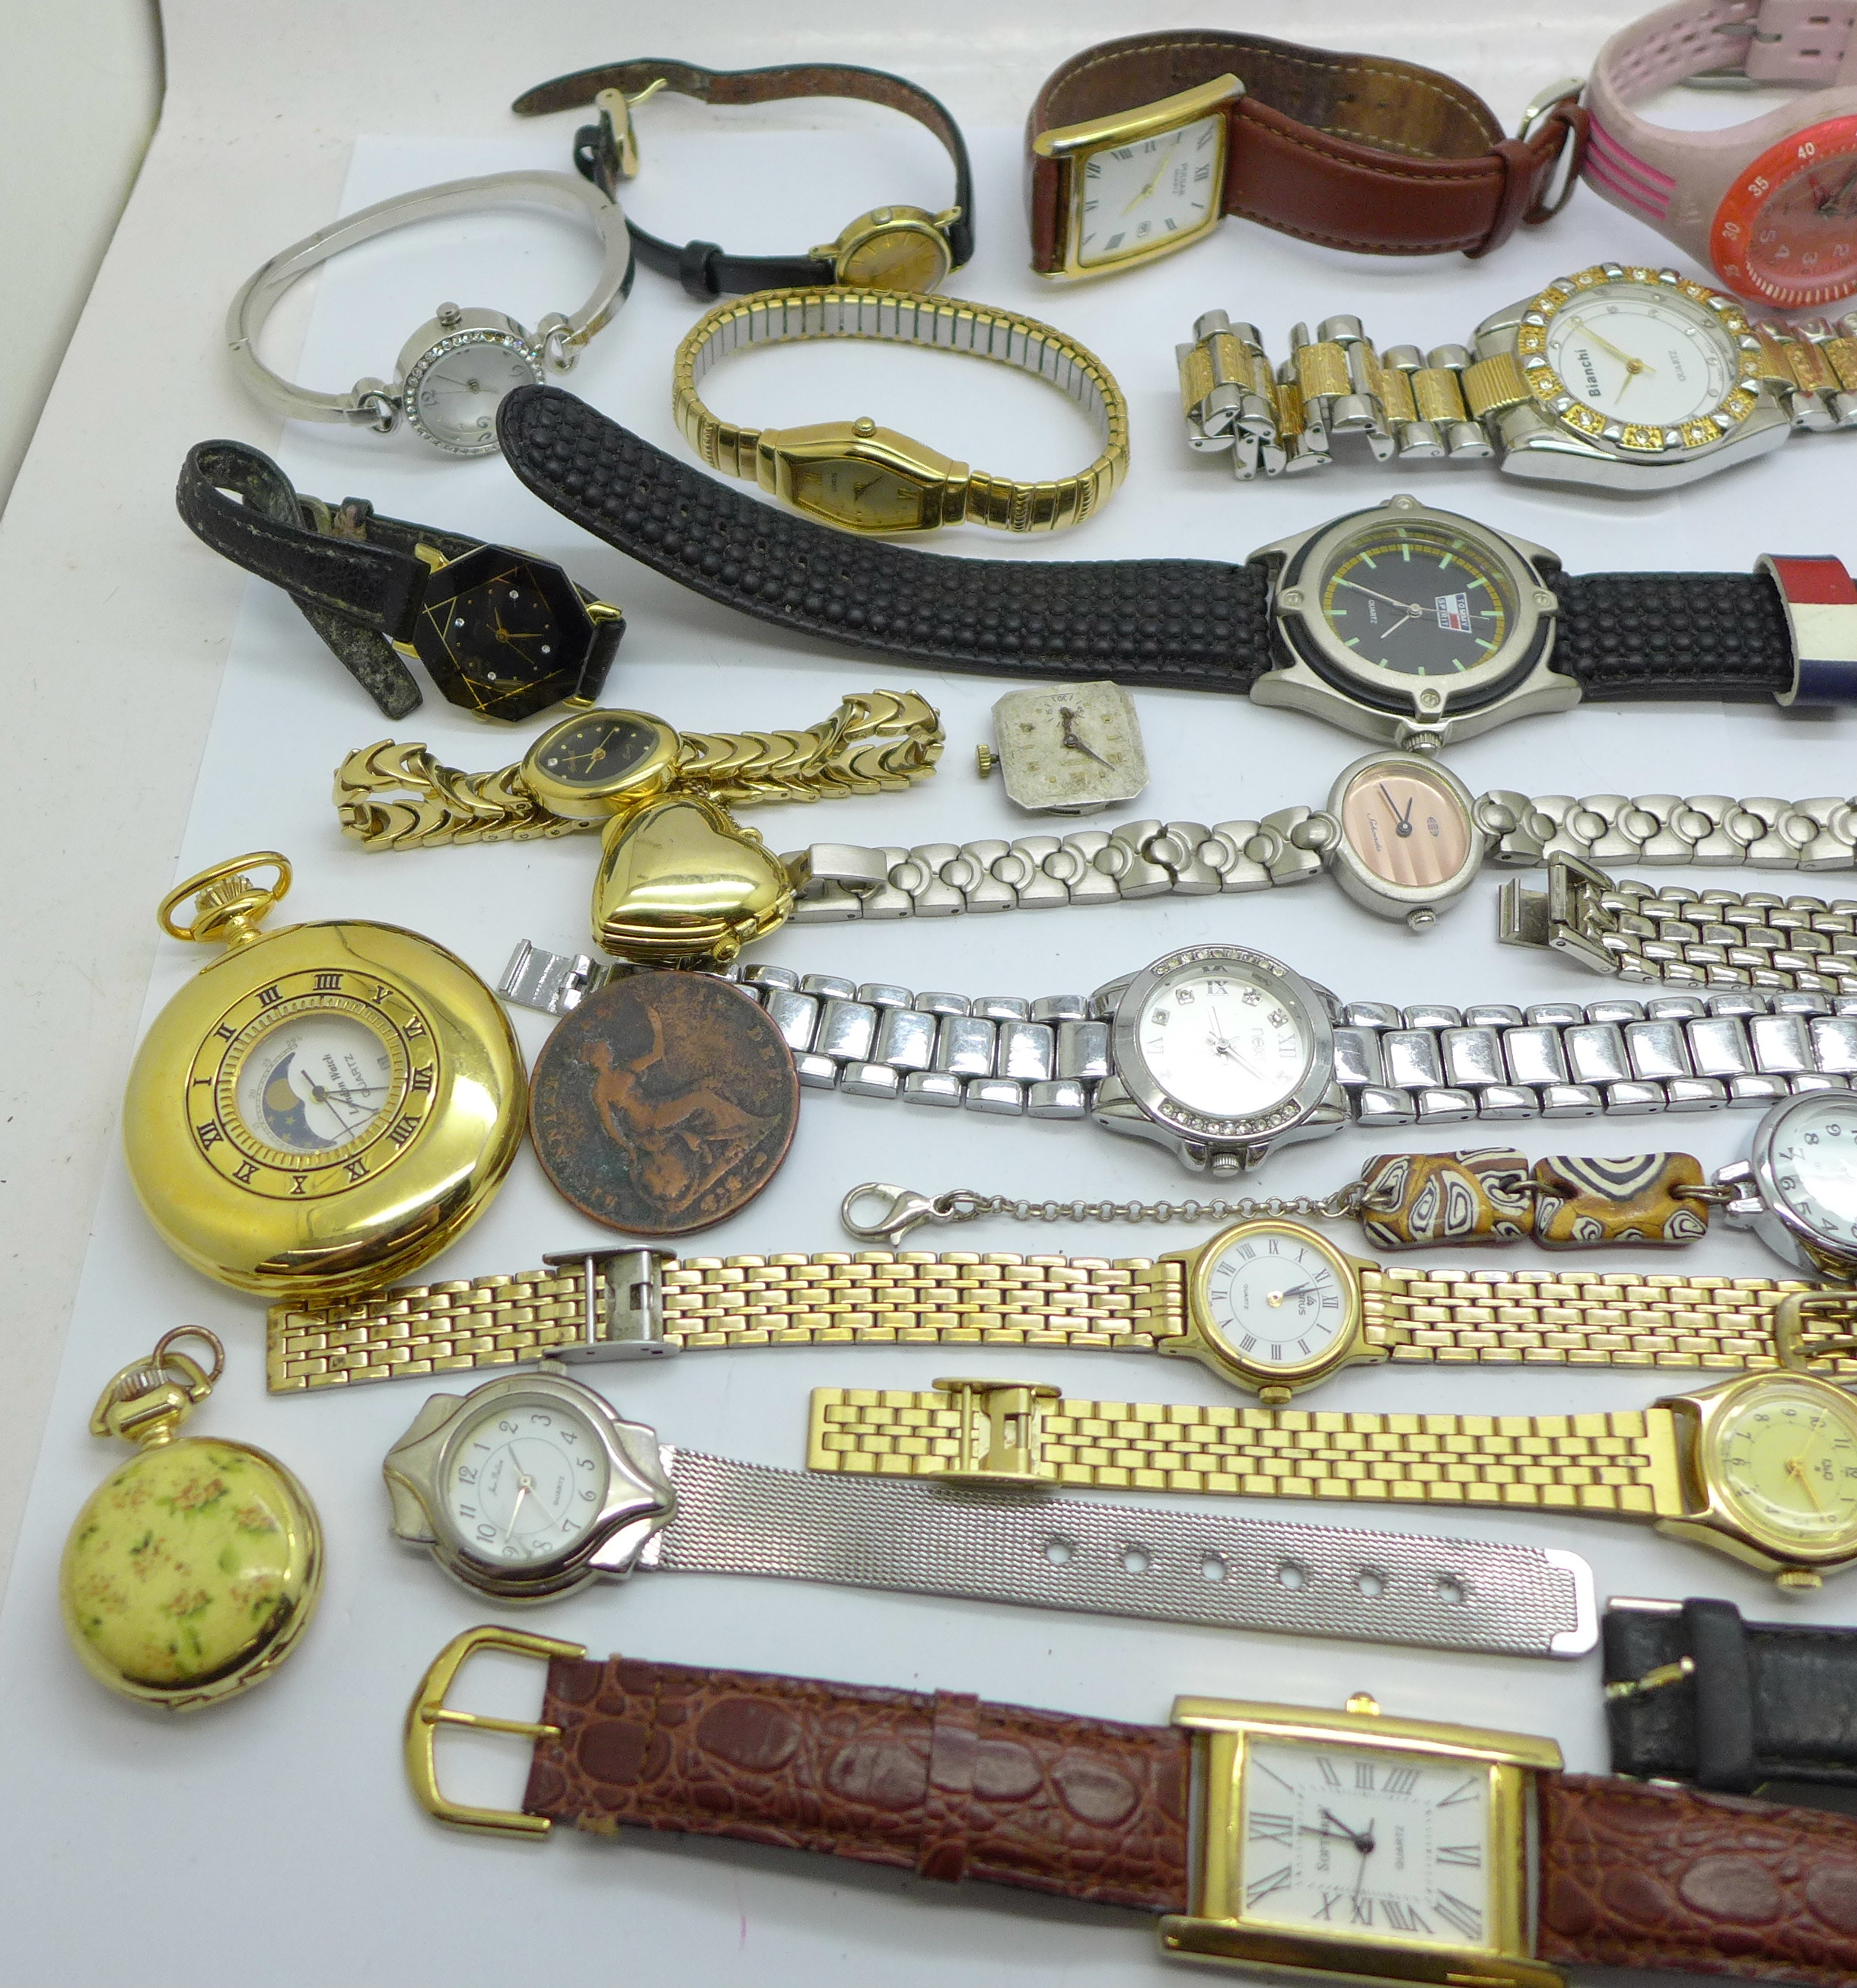 Wristwatches, pocket watches, etc., including Swatch and Seiko - Image 2 of 5